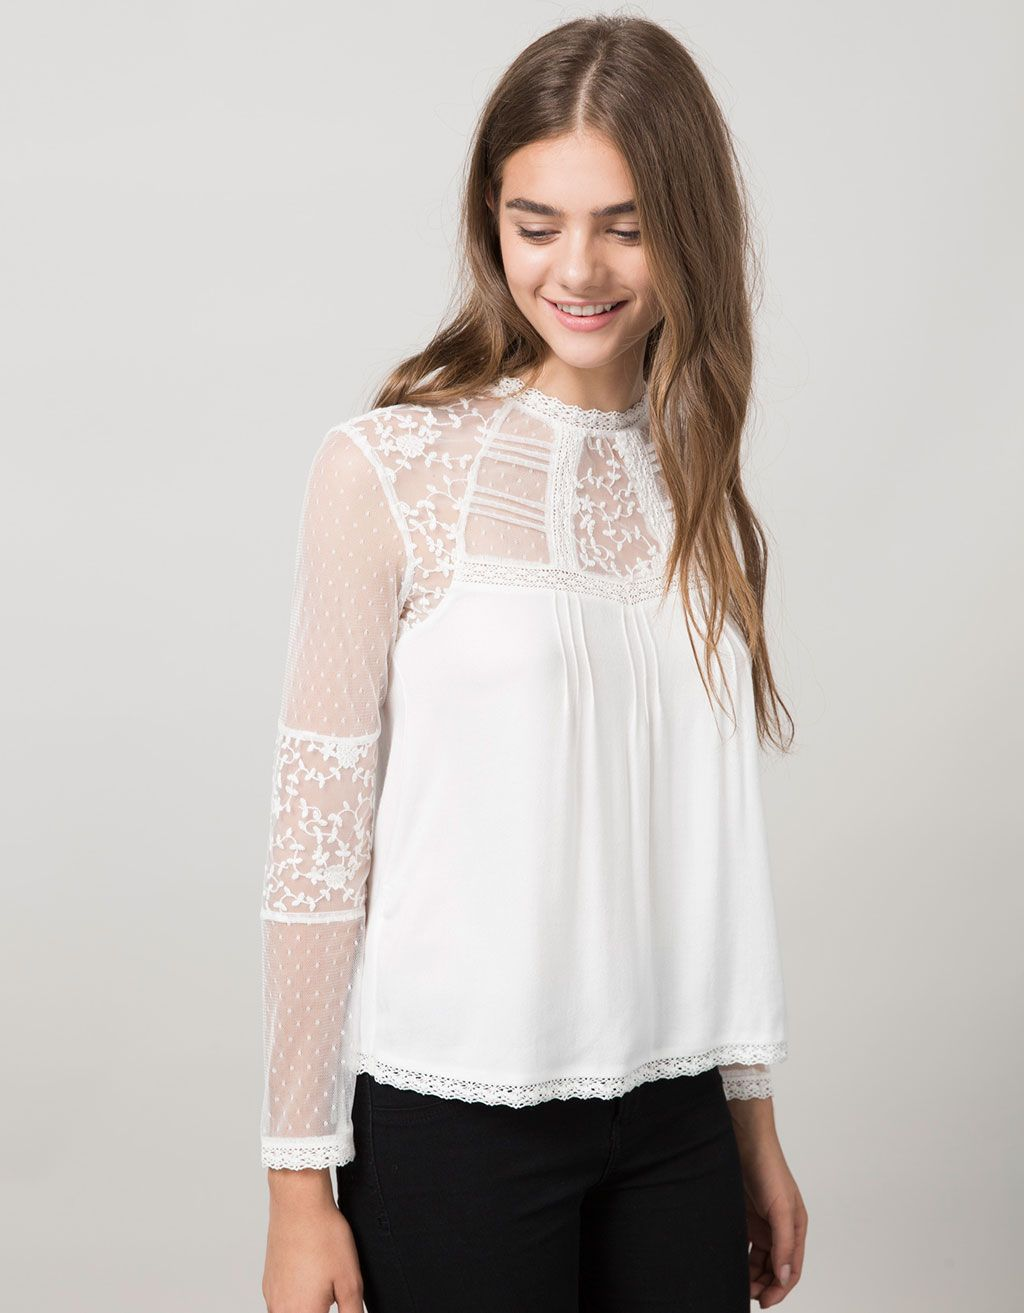 tie front button sleeve blouse in cream - Ecru Bershka For Sale 2018 Clearance Factory Outlet pe8Hr